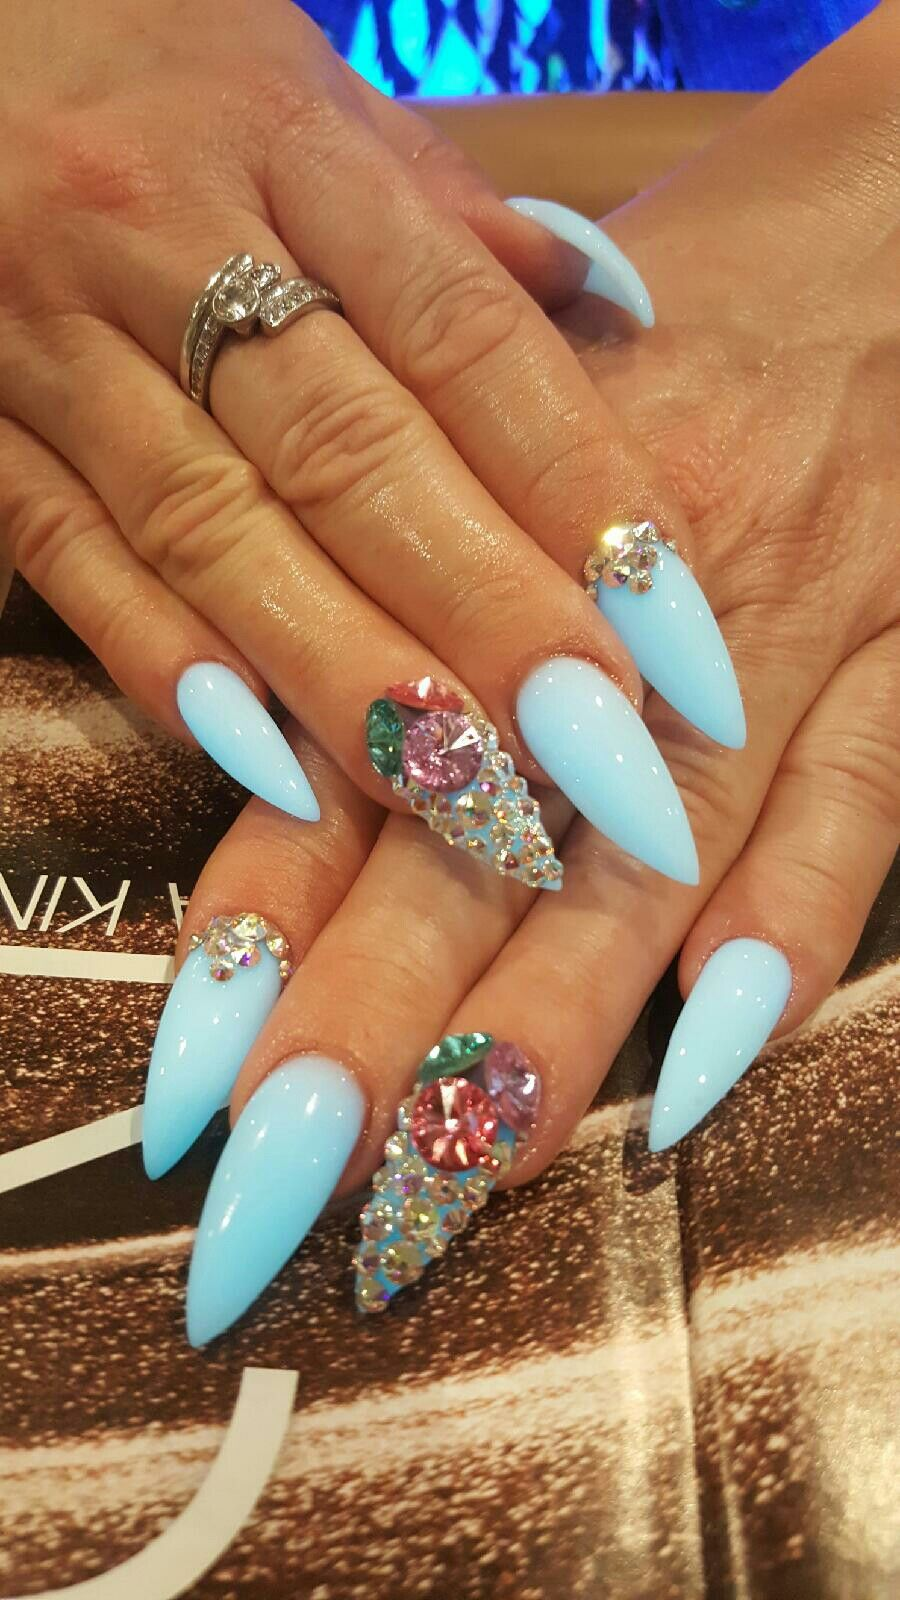 3d stiletto glow in the dark acrylic nails | 3-D Nails | Pinterest ...